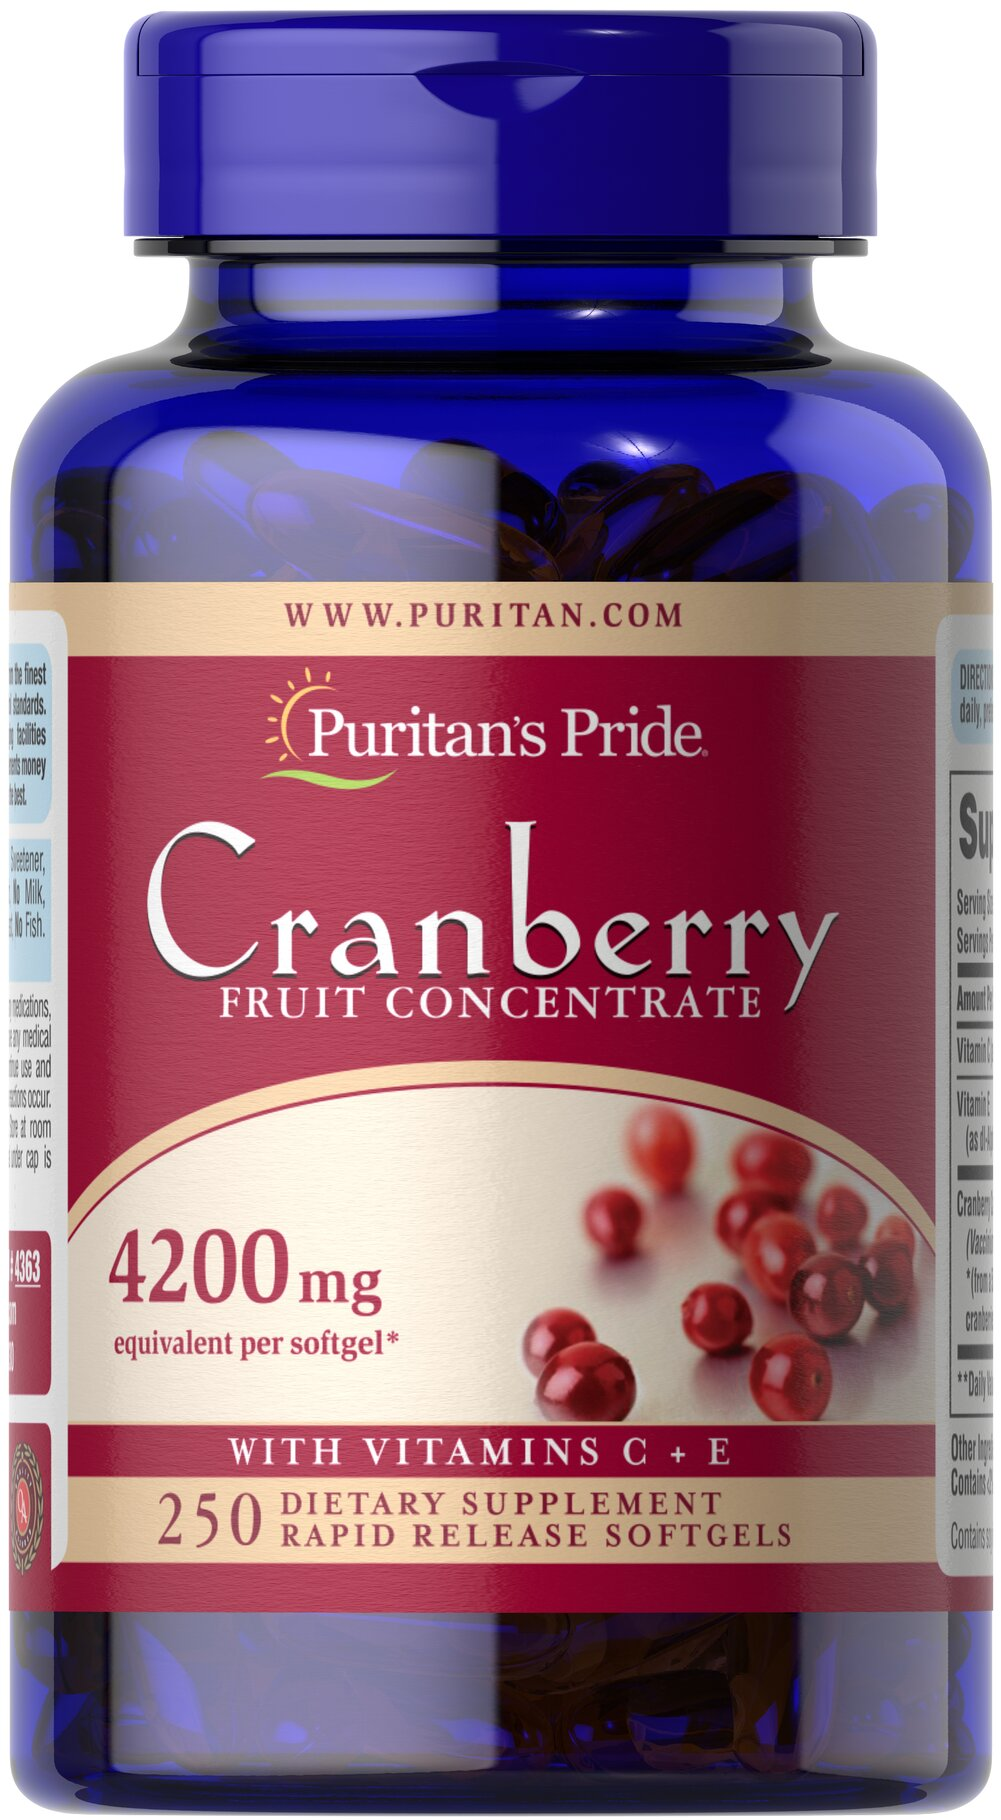 Cranberry Fruit Concentrate with C & E 4200 mg <p>This product has the benefits of concentrated cranberry without the unnecessary sugar and calories. Each of our concentrated (4200 mg) Cranberry softgels provide the equivalent of (8400 mg) of fresh cranberries plus (40 mg) of Vitamin C and 6 IU of Vitamin E.  Adults can take two softgels 3 times daily, after meals.</p> 250 Softgels 4200 mg $23.39